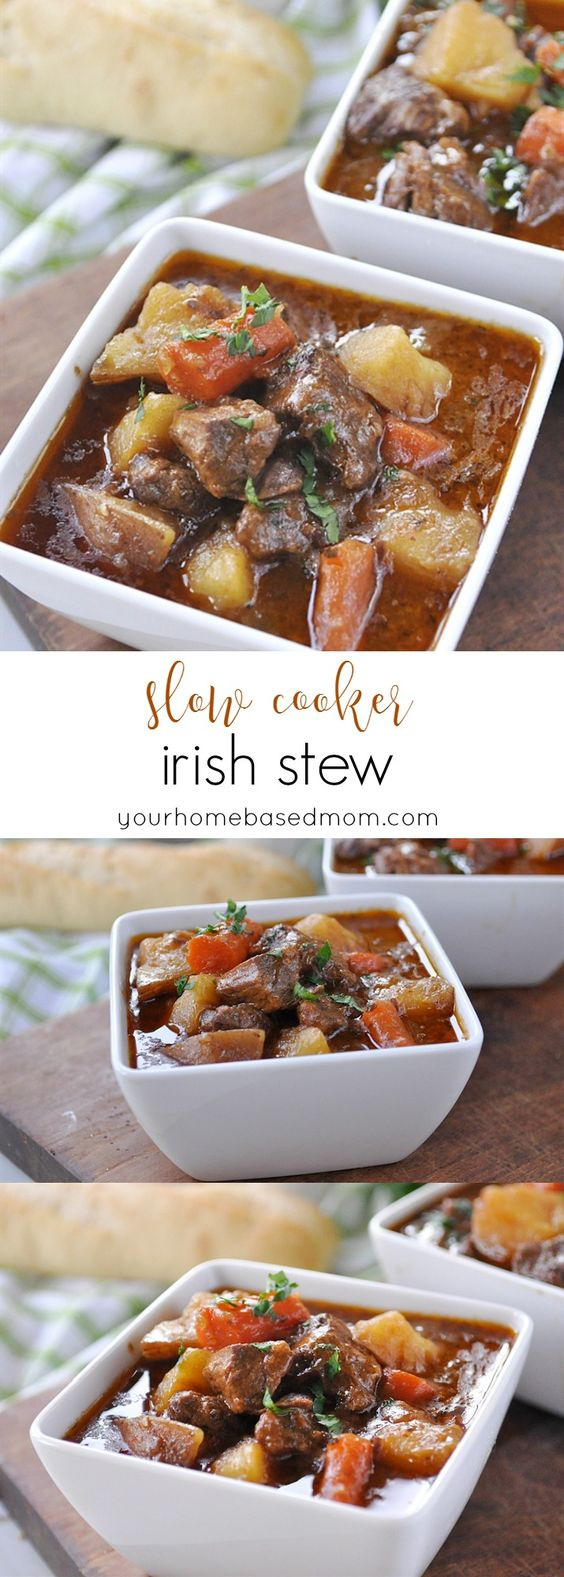 how to cook irish stew